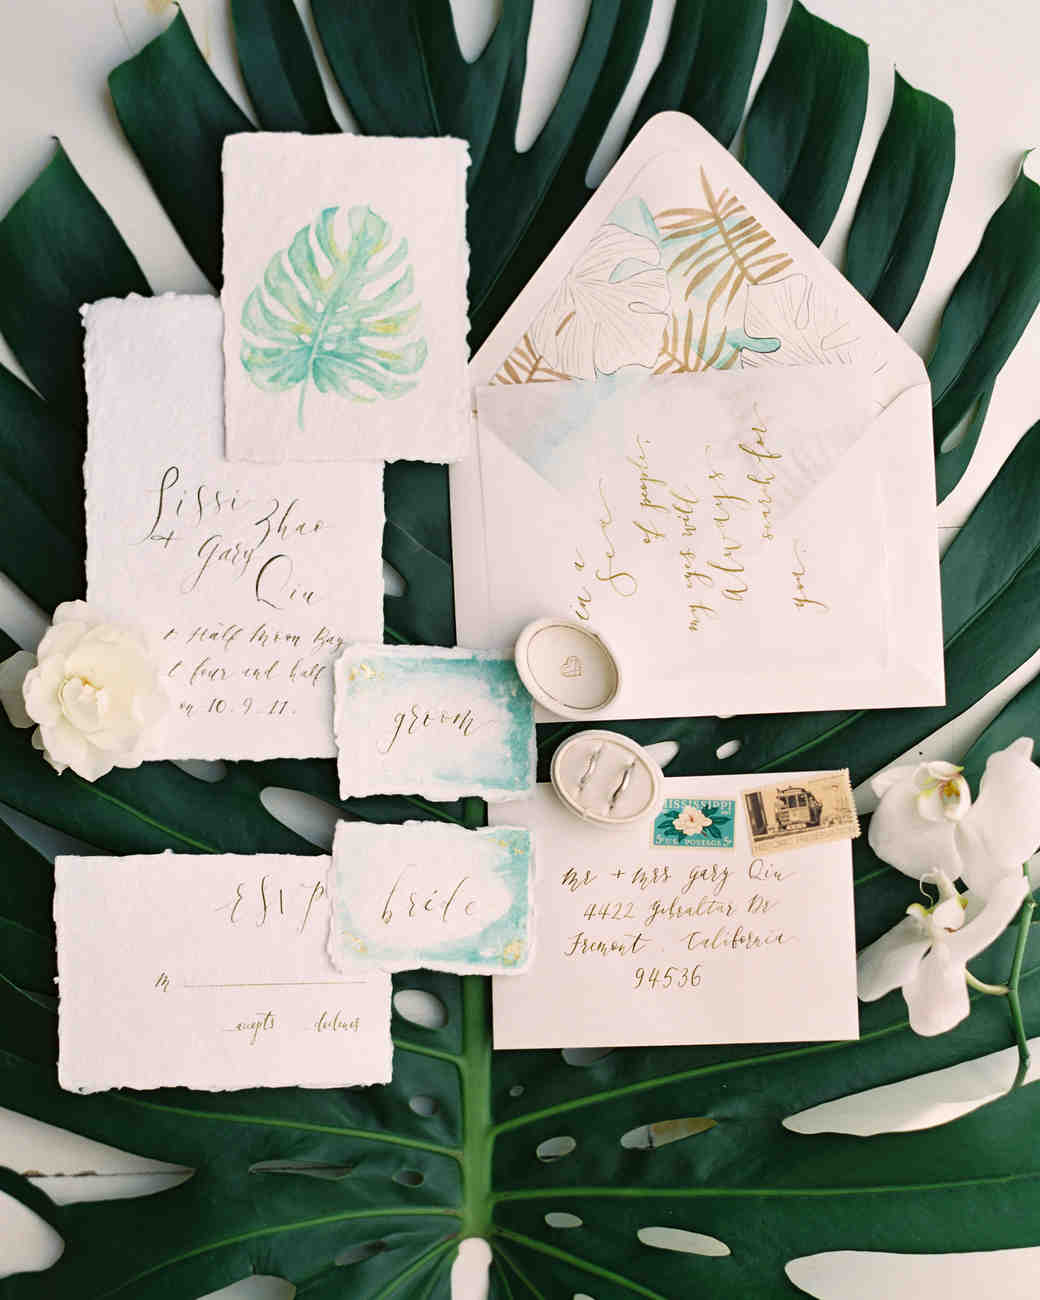 Beach Wedding Invitations That Set The Mood For A Seaside